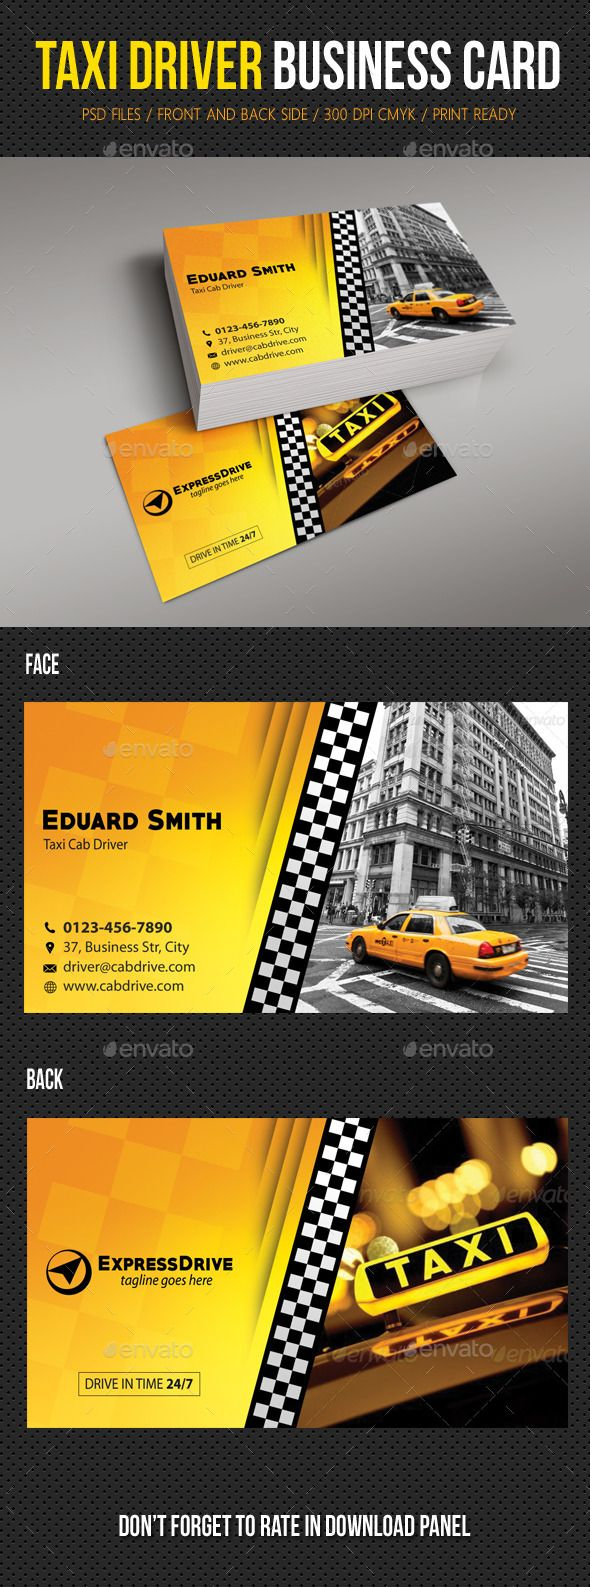 15 business card designs for taxi business business cards taxi driver cab business card magicingreecefo Gallery